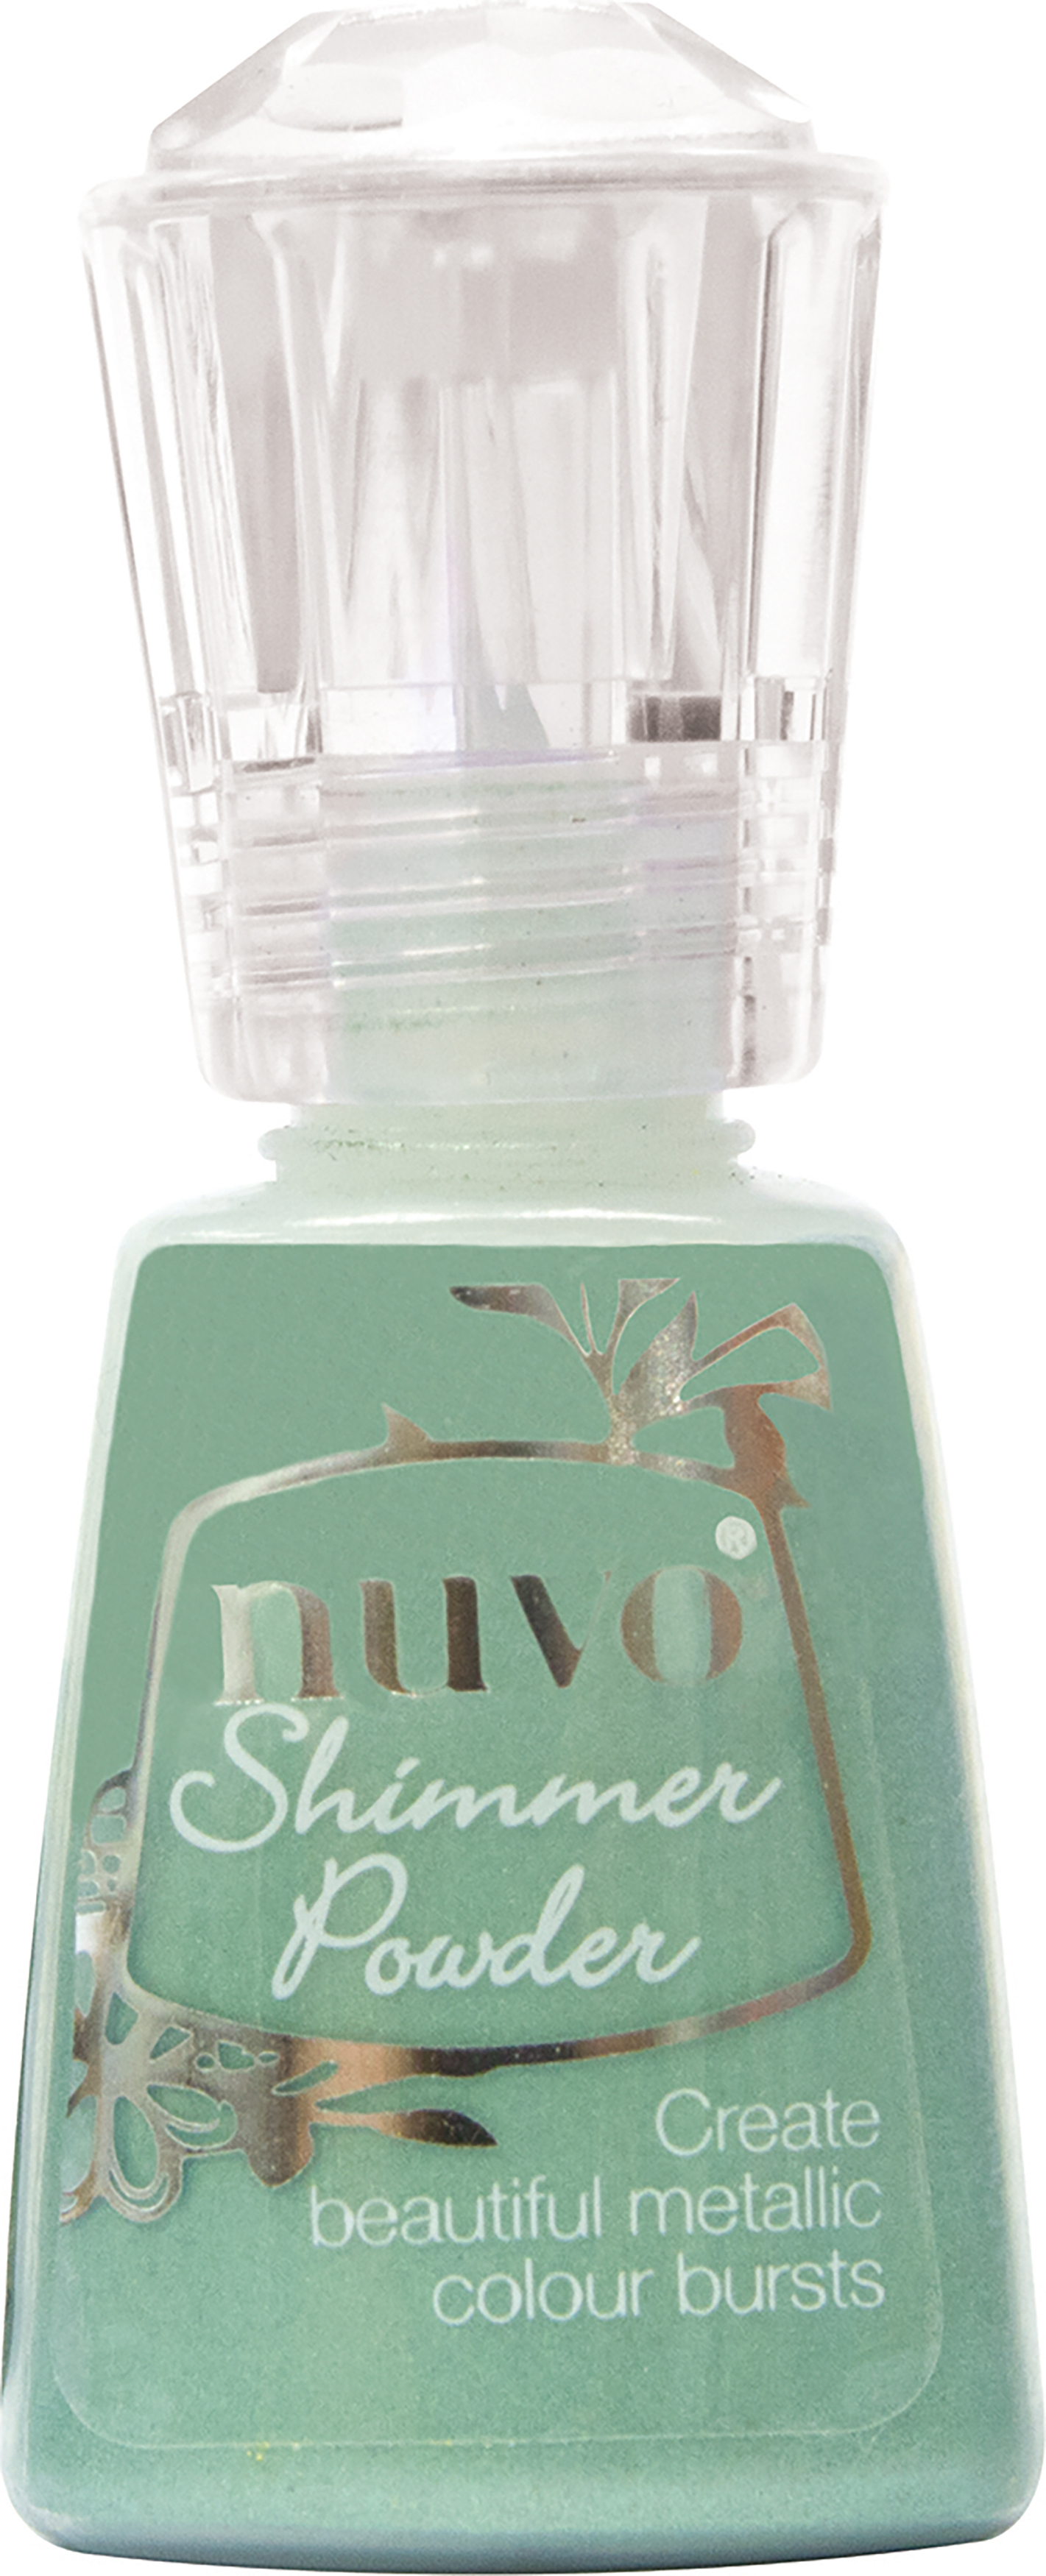 Nuvo Shimmer Powder Green Parade